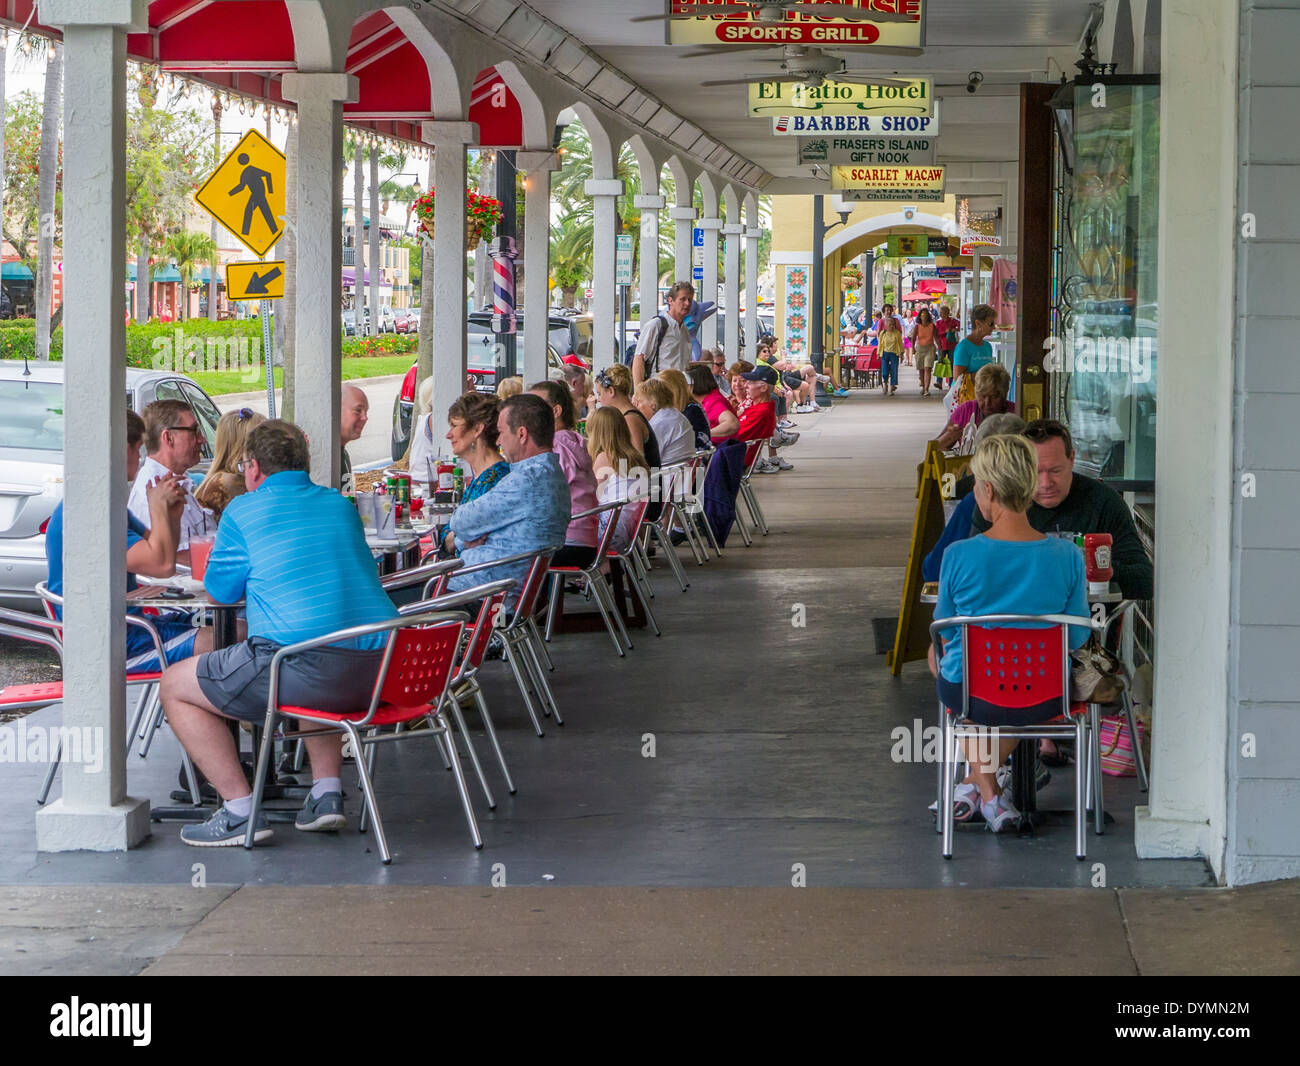 People eating at outdoor sidewalk cafe in Venice Florida - Stock Image